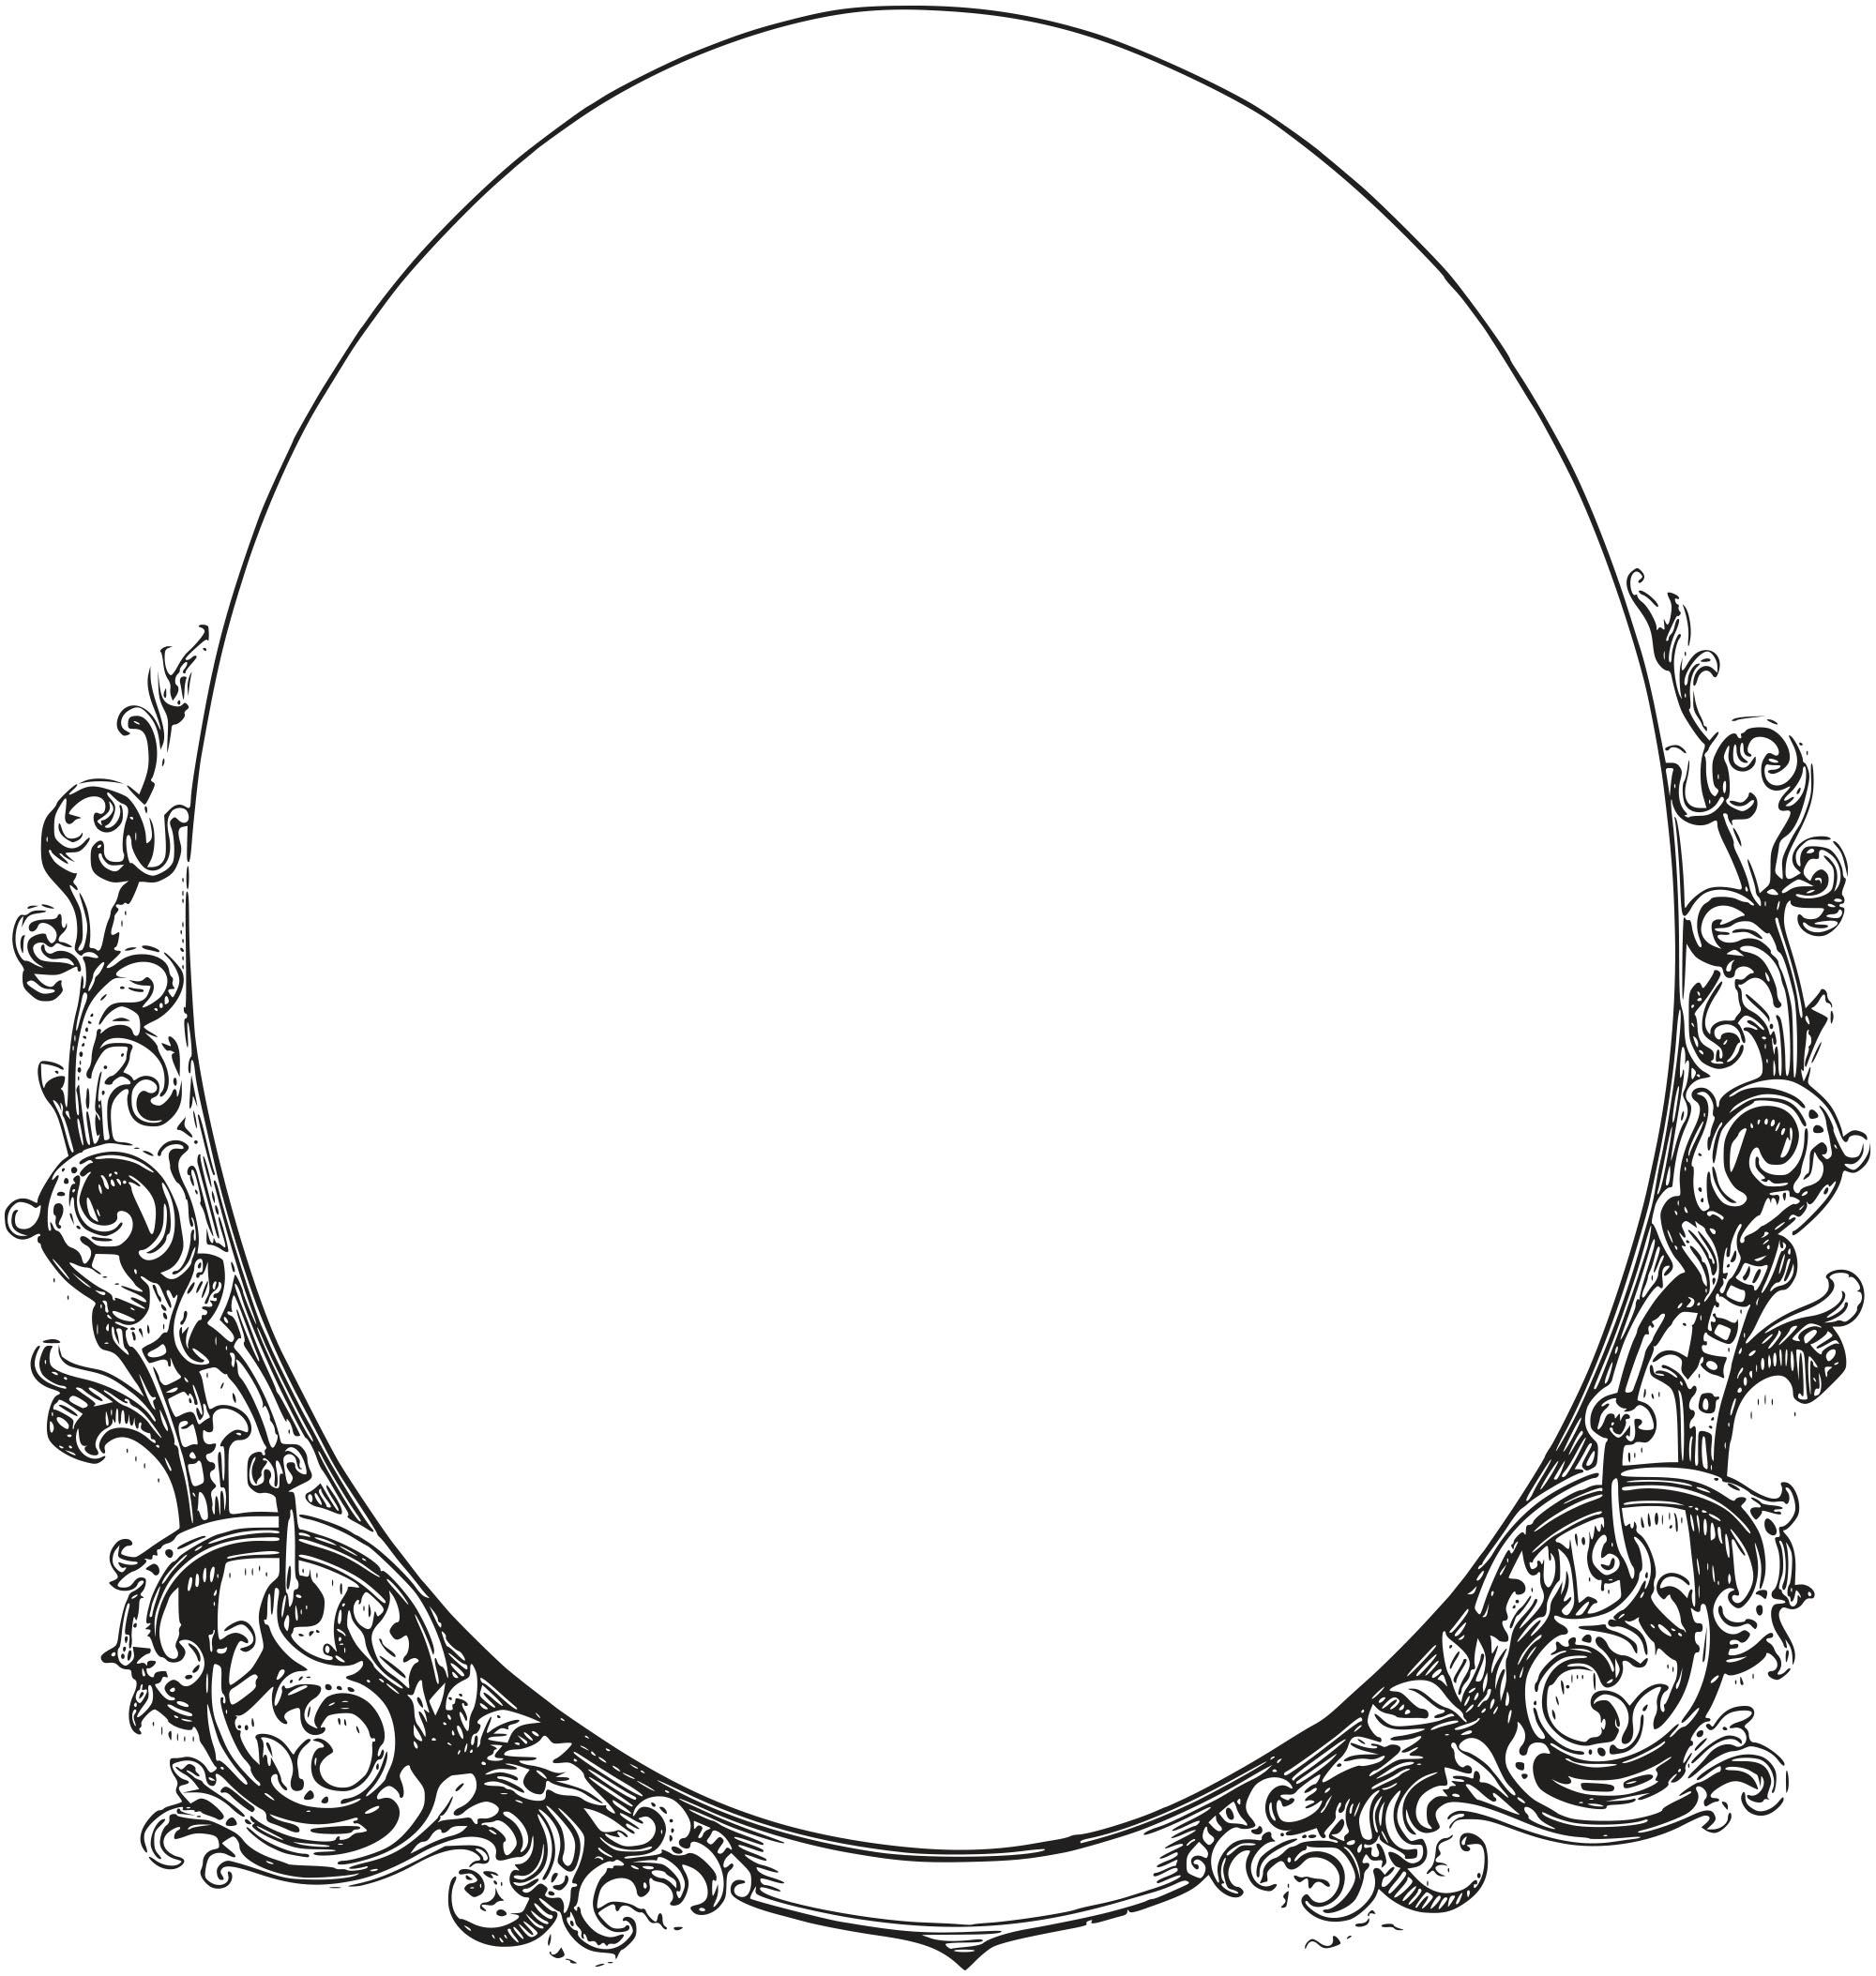 Free oval cliparts graphic library library Oval Frame Clipart | Free download best Oval Frame Clipart on ... graphic library library